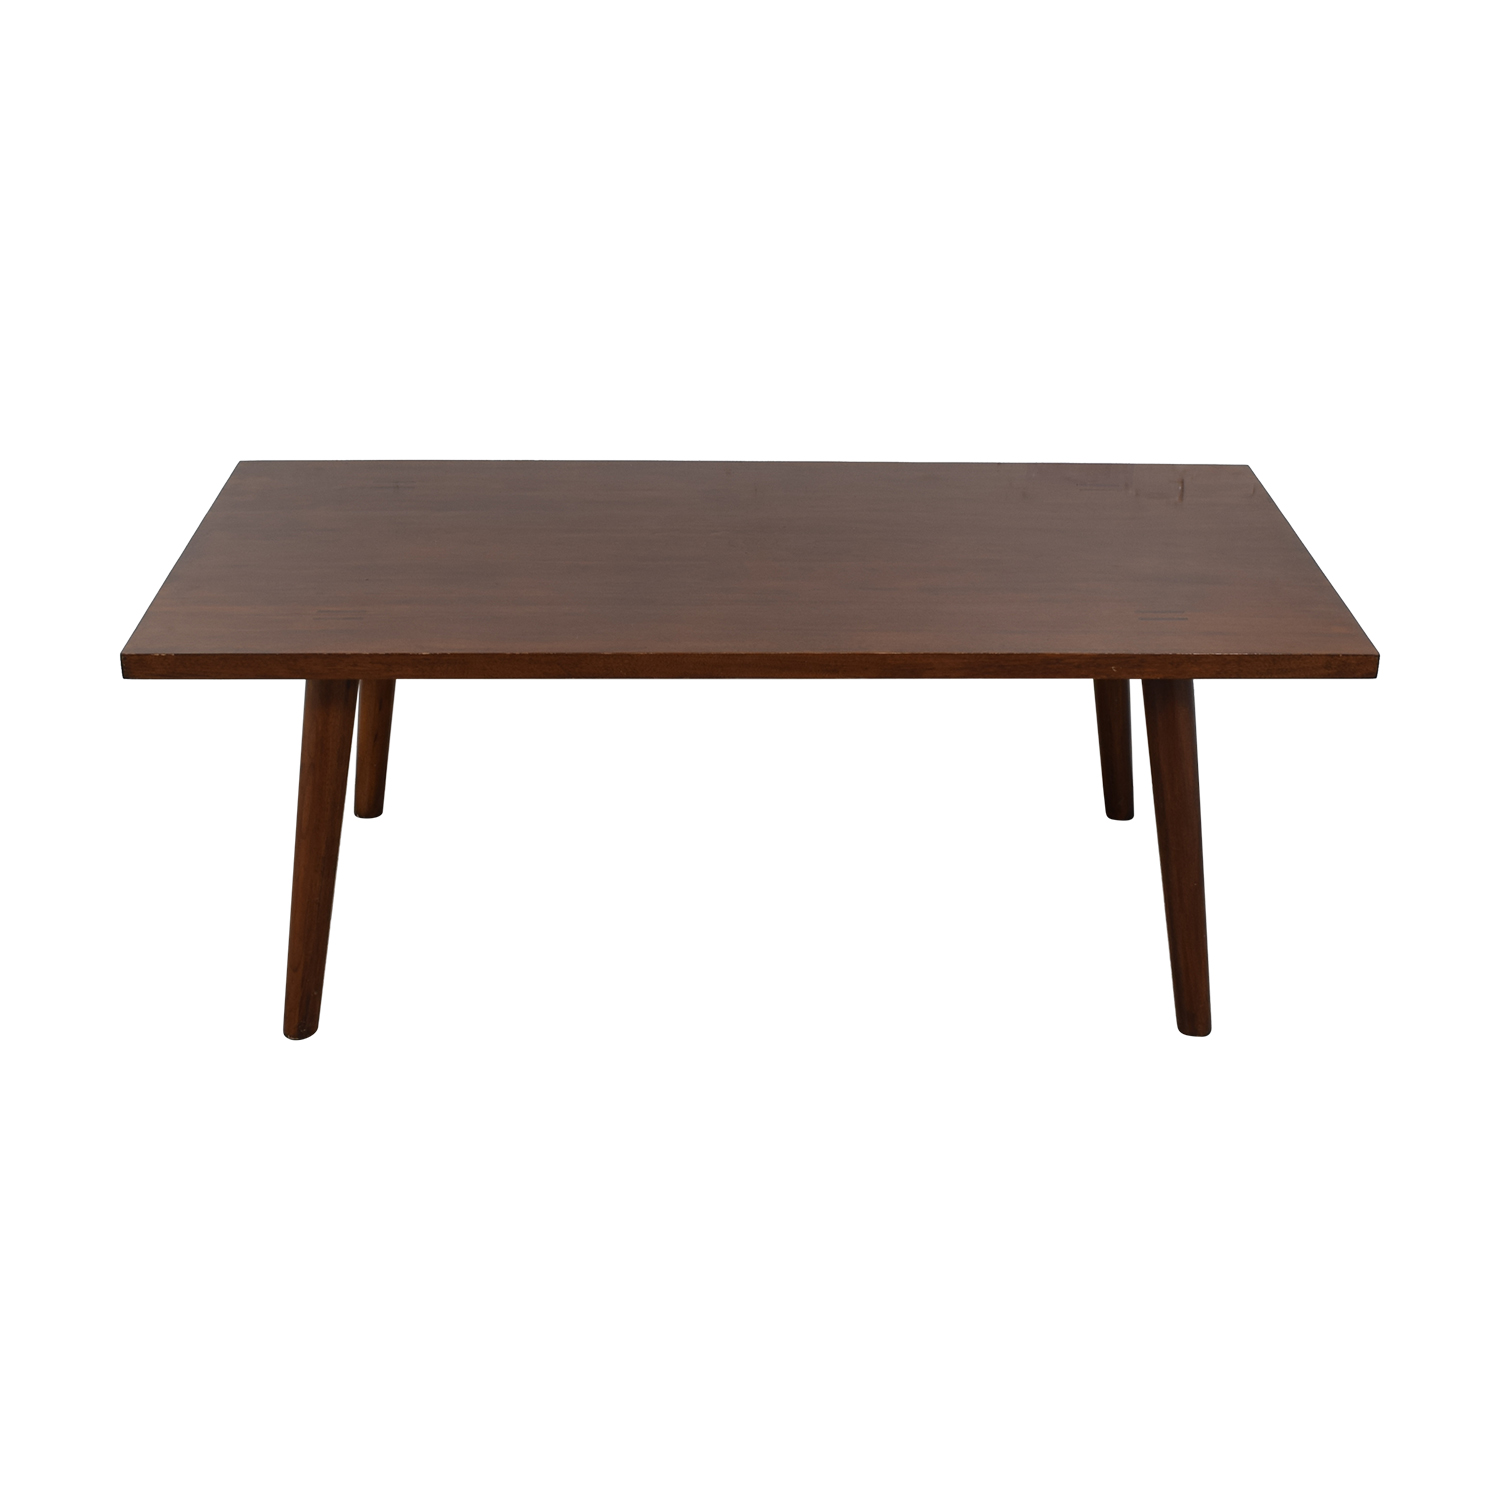 Room & Board Extendable Dining Table / Sofas